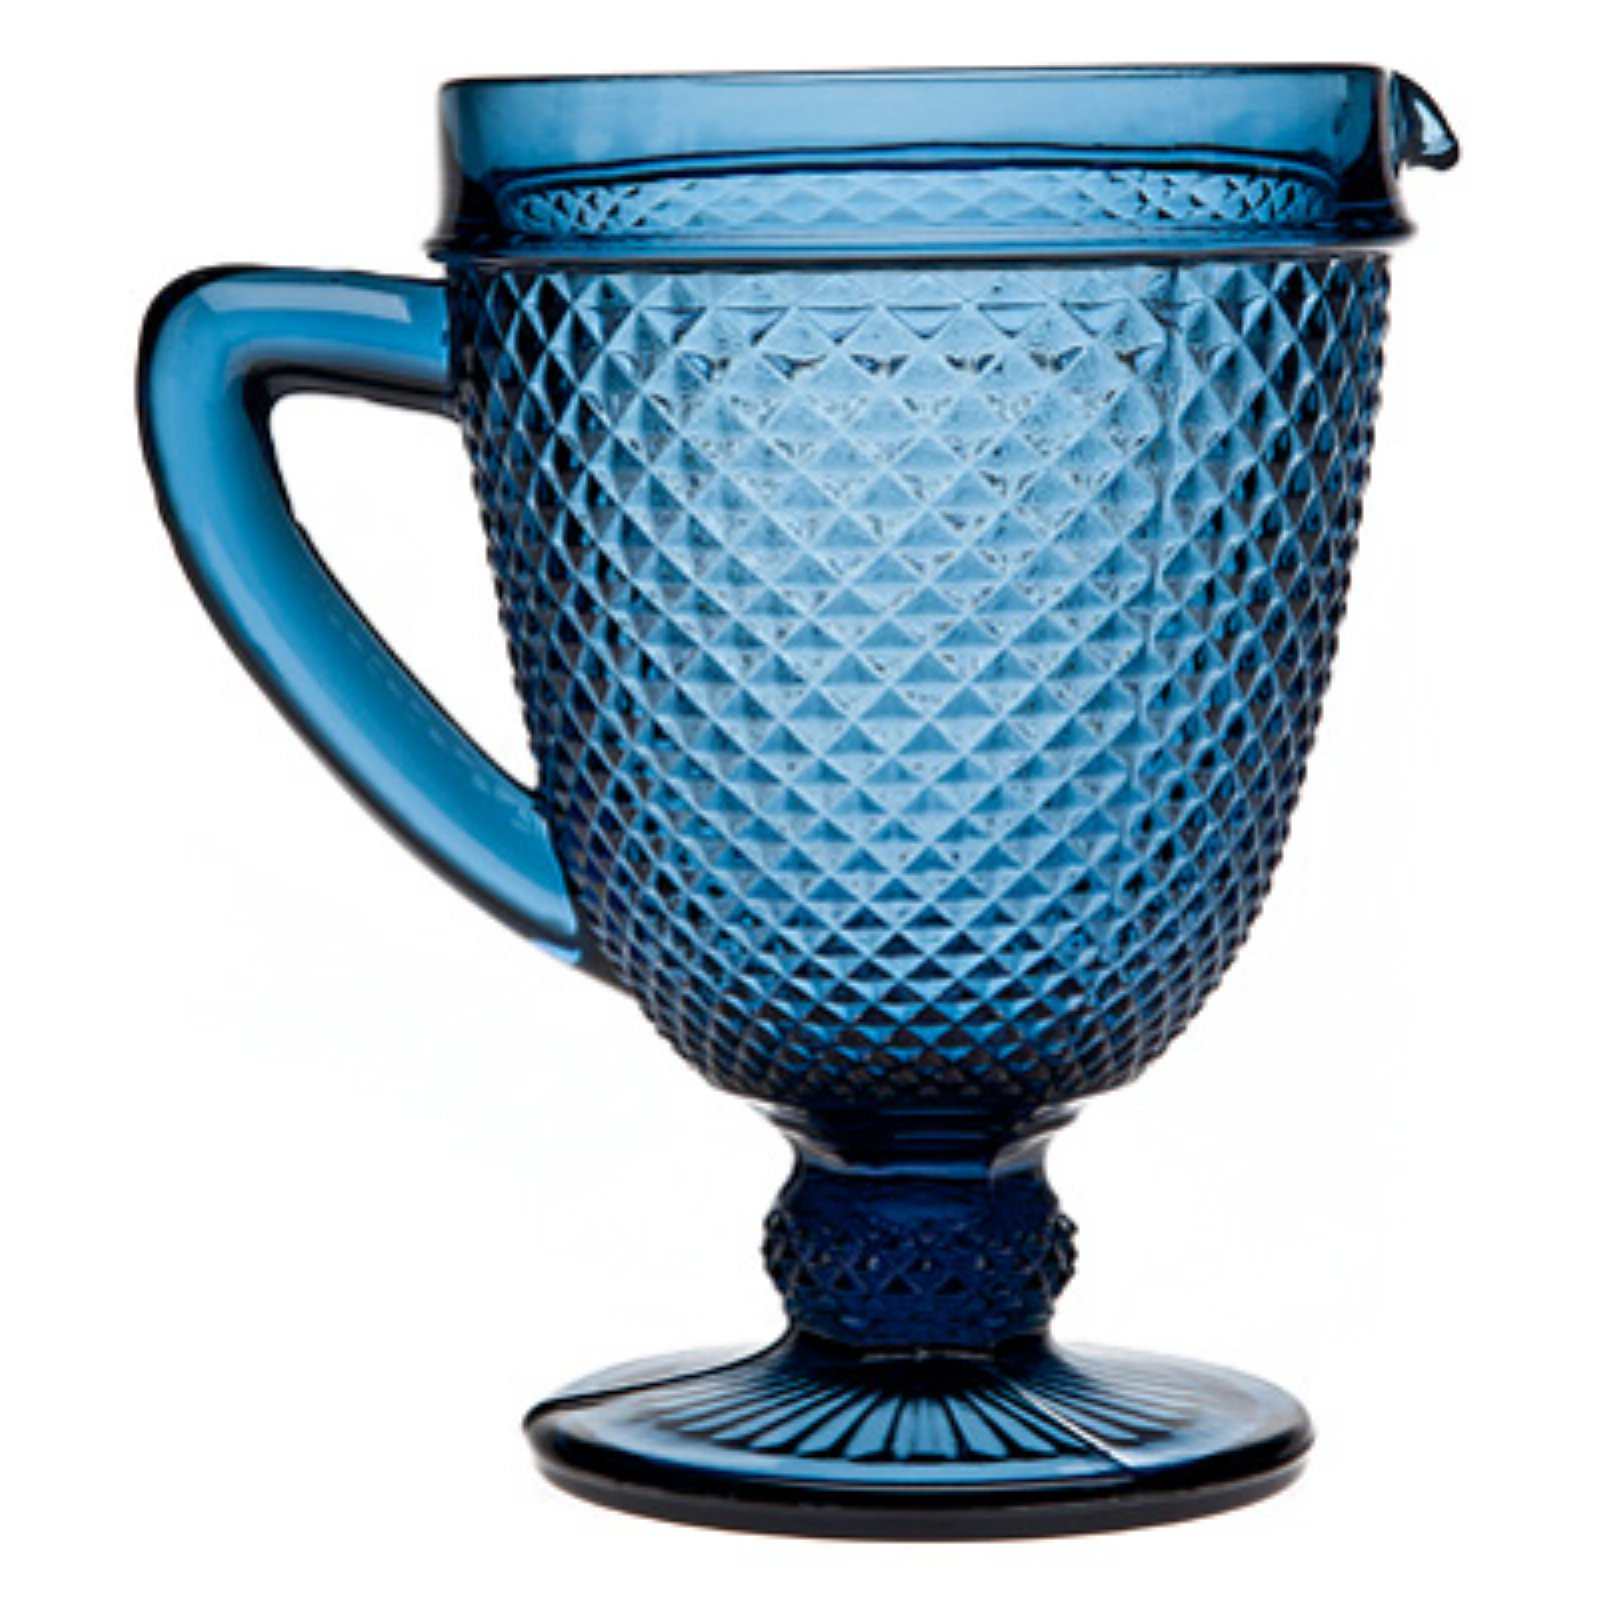 Godinger Belmont 30 oz. Blue Pitcher